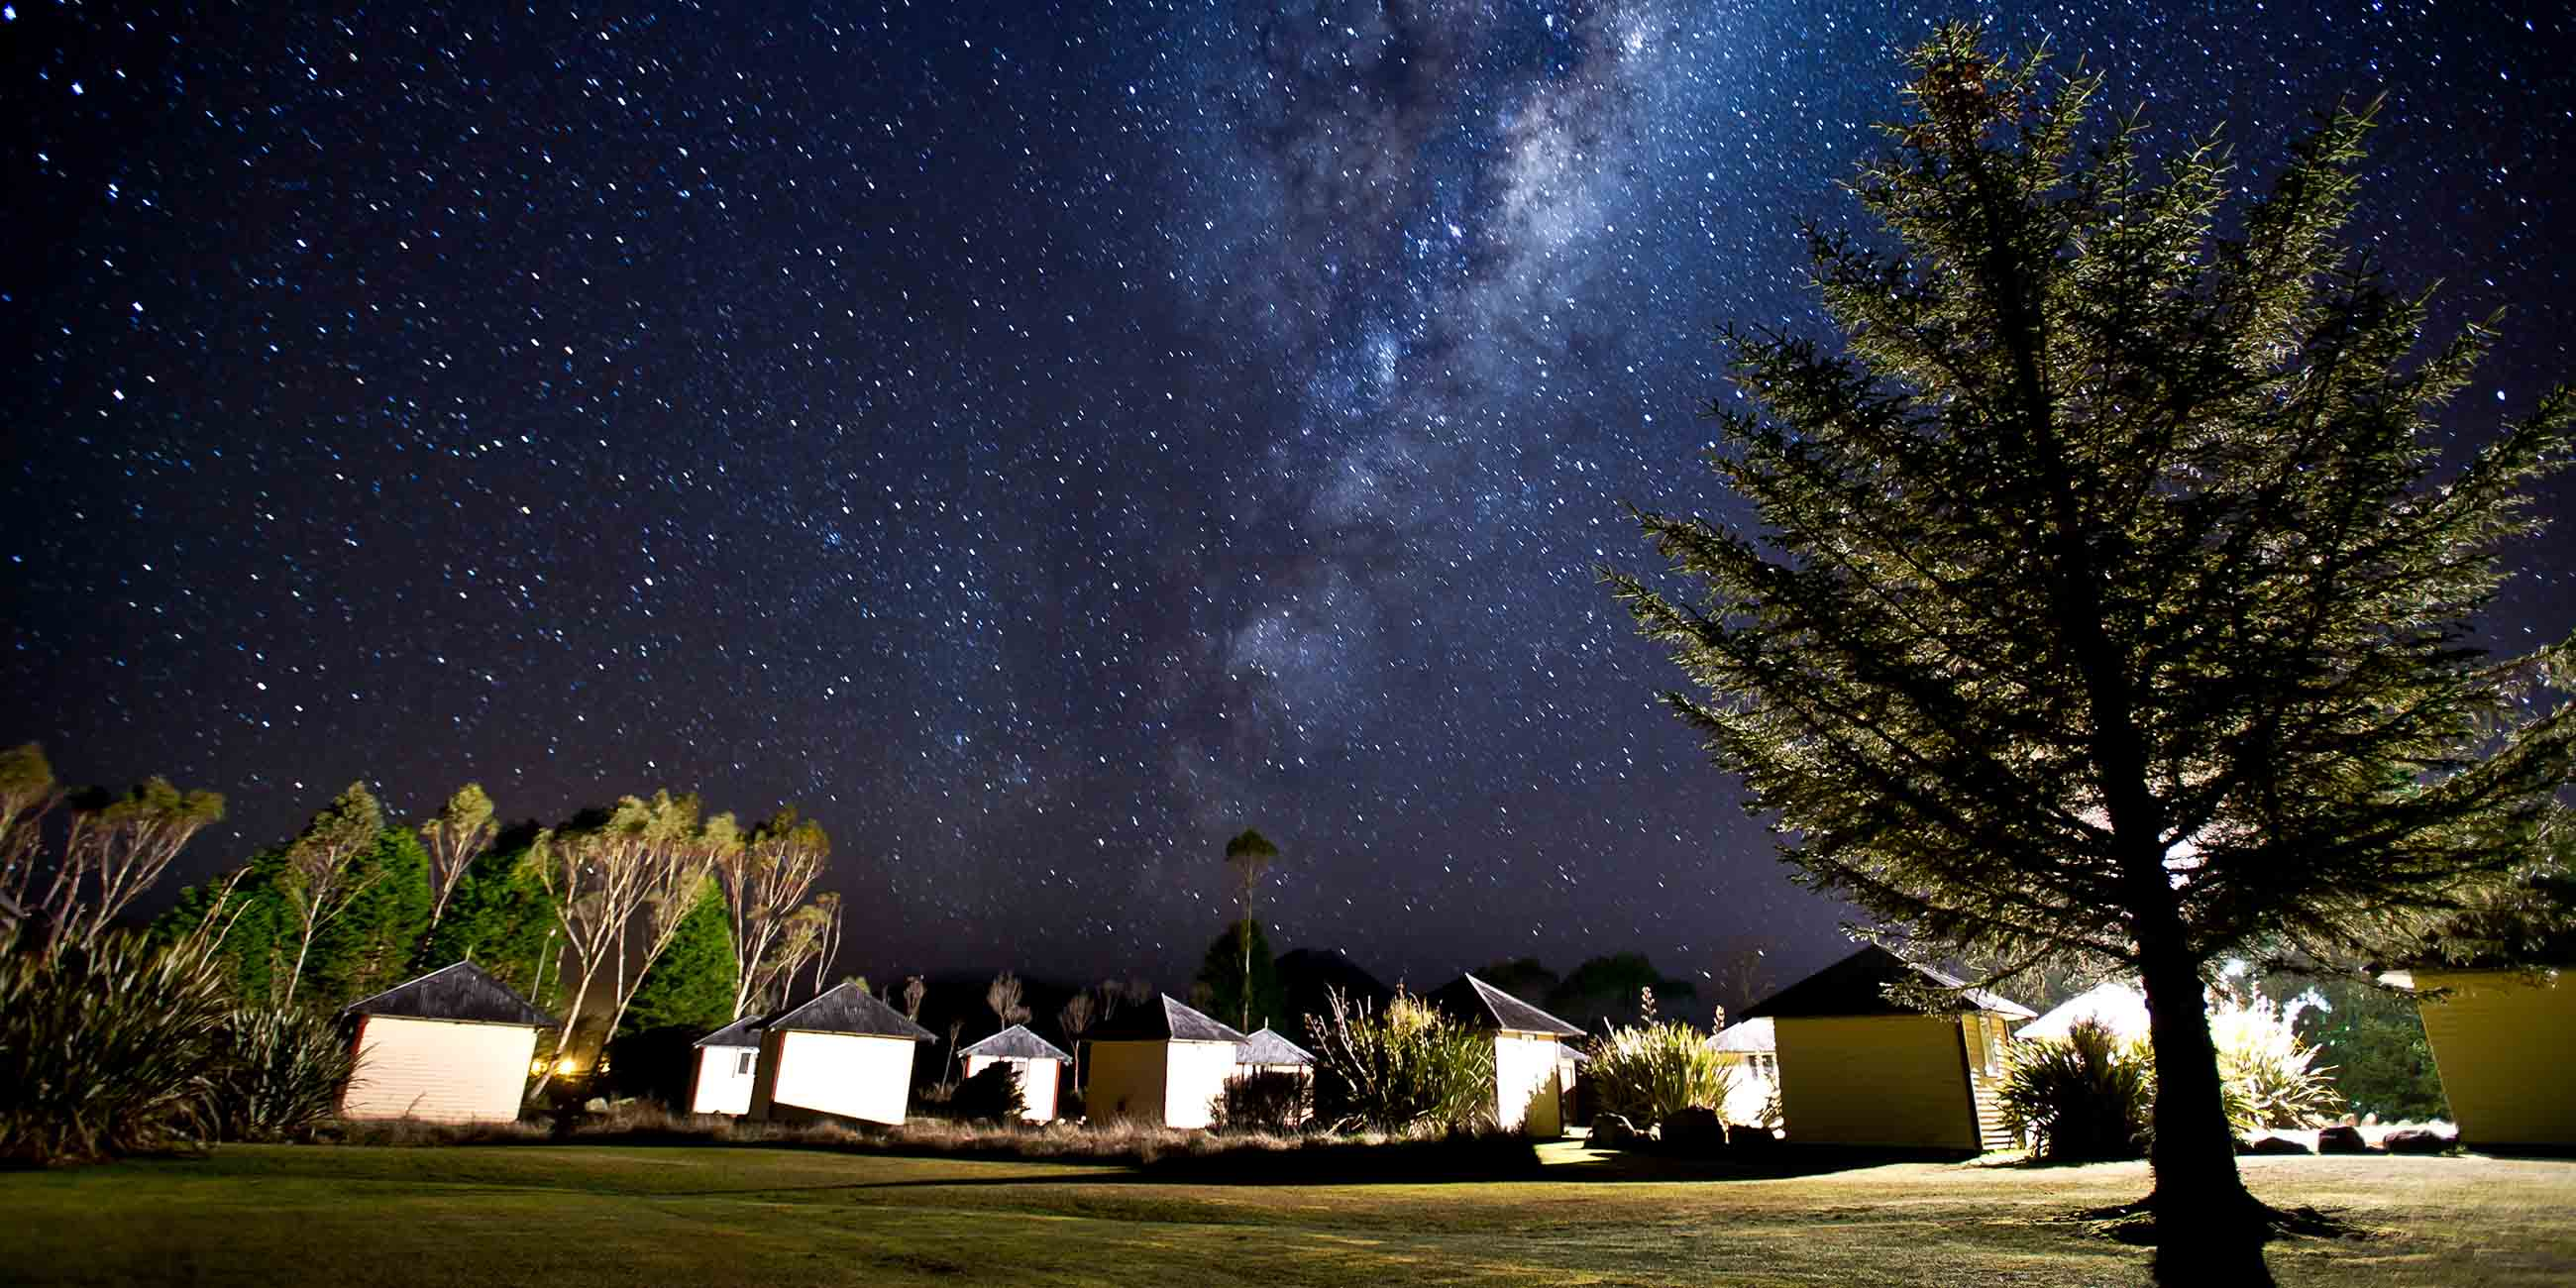 A row of Discovery Lodge camping huts surrounded by trees with the Milky Way shining above